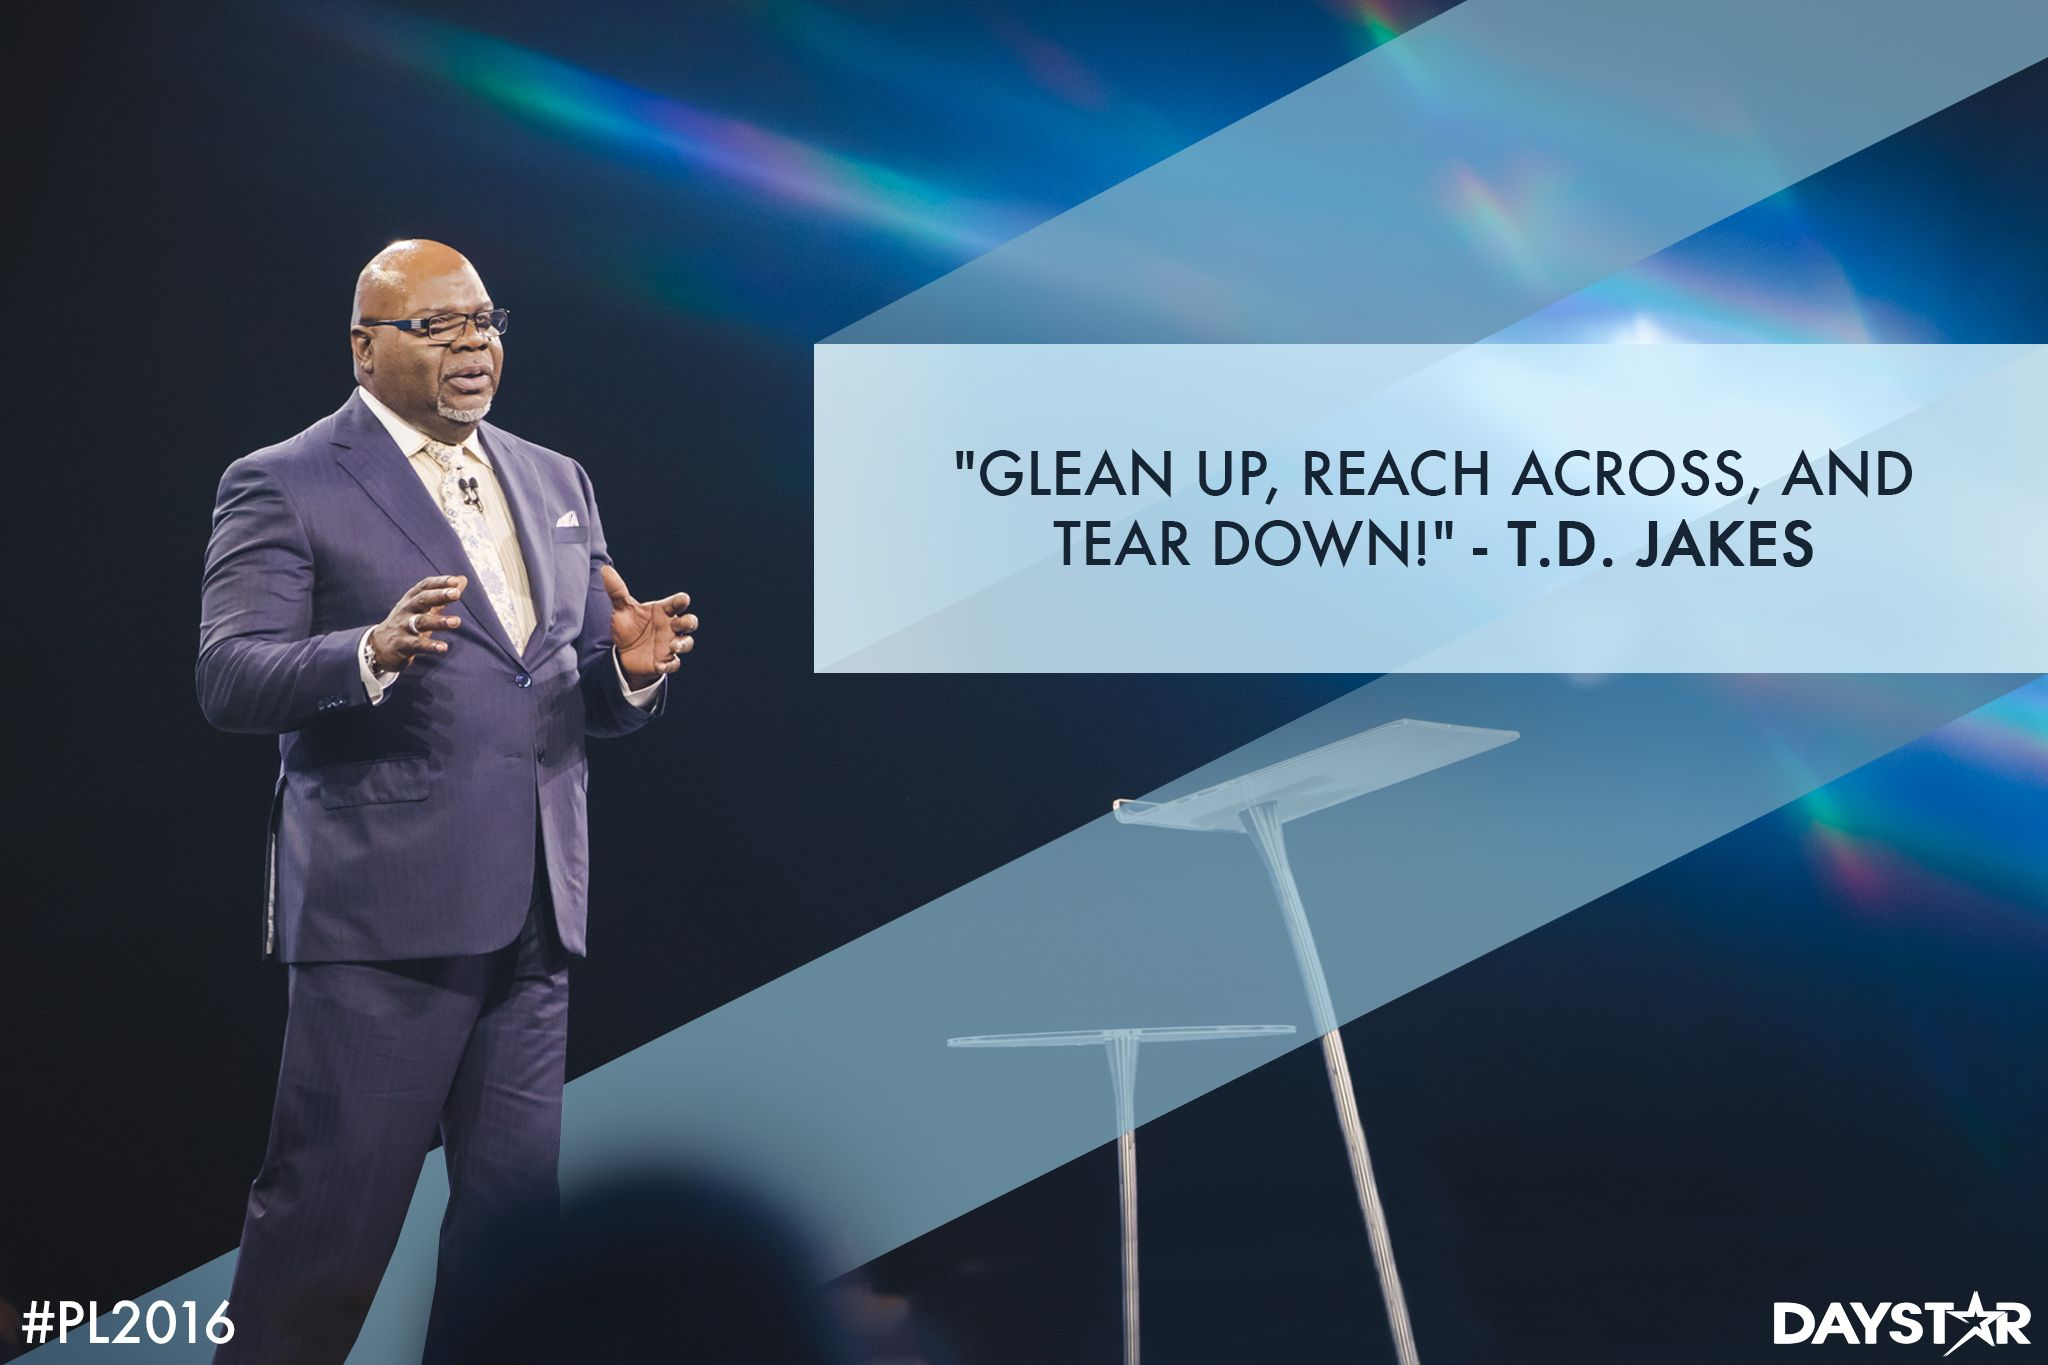 """""""Glean up, reach across, and tear down!"""" -Bishop T.D. Jakes [Daystar.com]"""